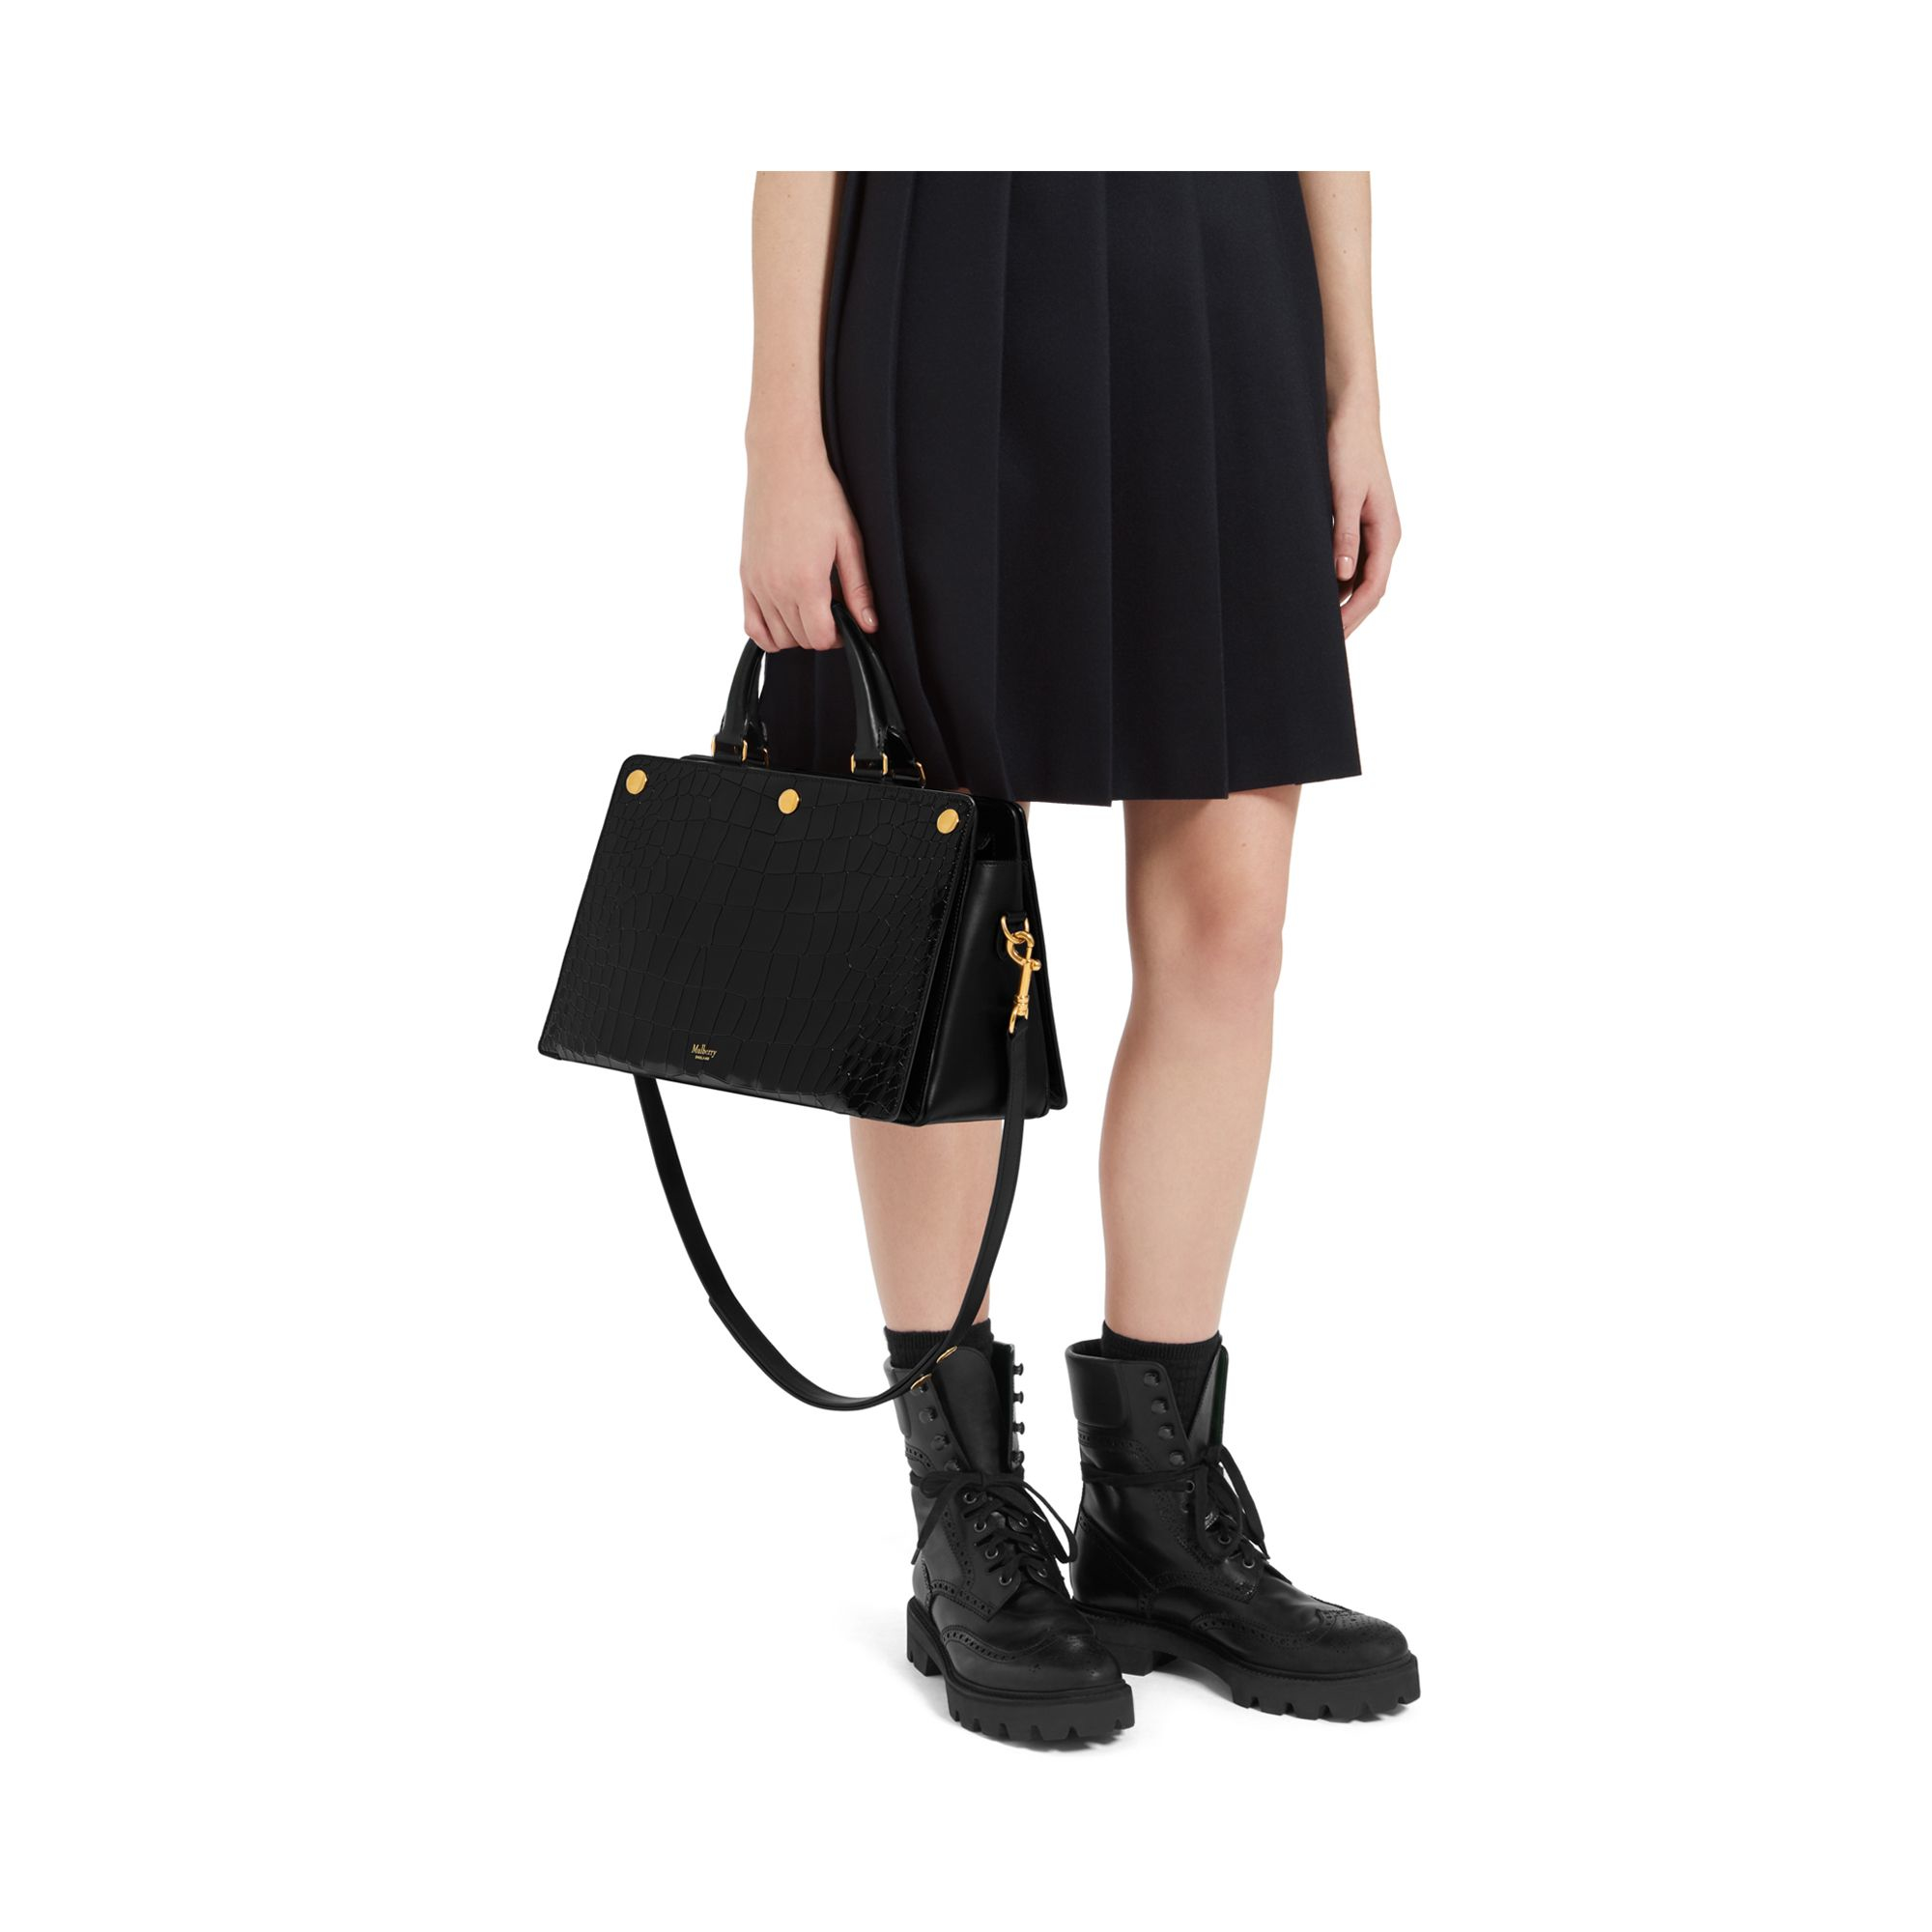 ad6710c3a2 ... bags c0e0f 9cc4b low cost mulberry chester croc embossed leather  satchel in black lyst 44d90 c4e3b ...